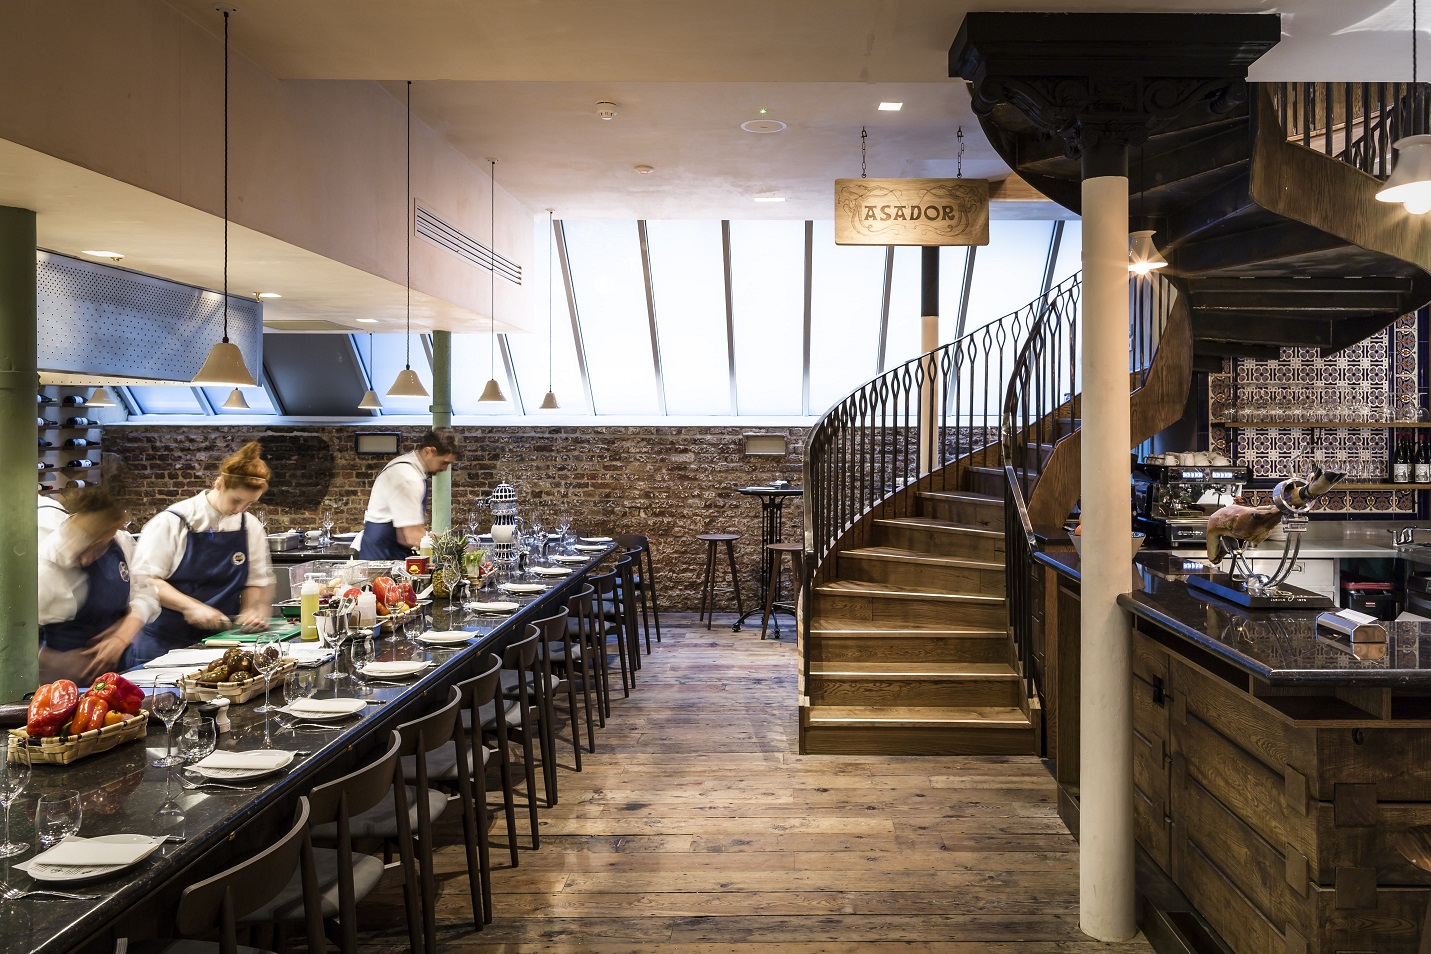 Restaurant and stair case_Chris Terry